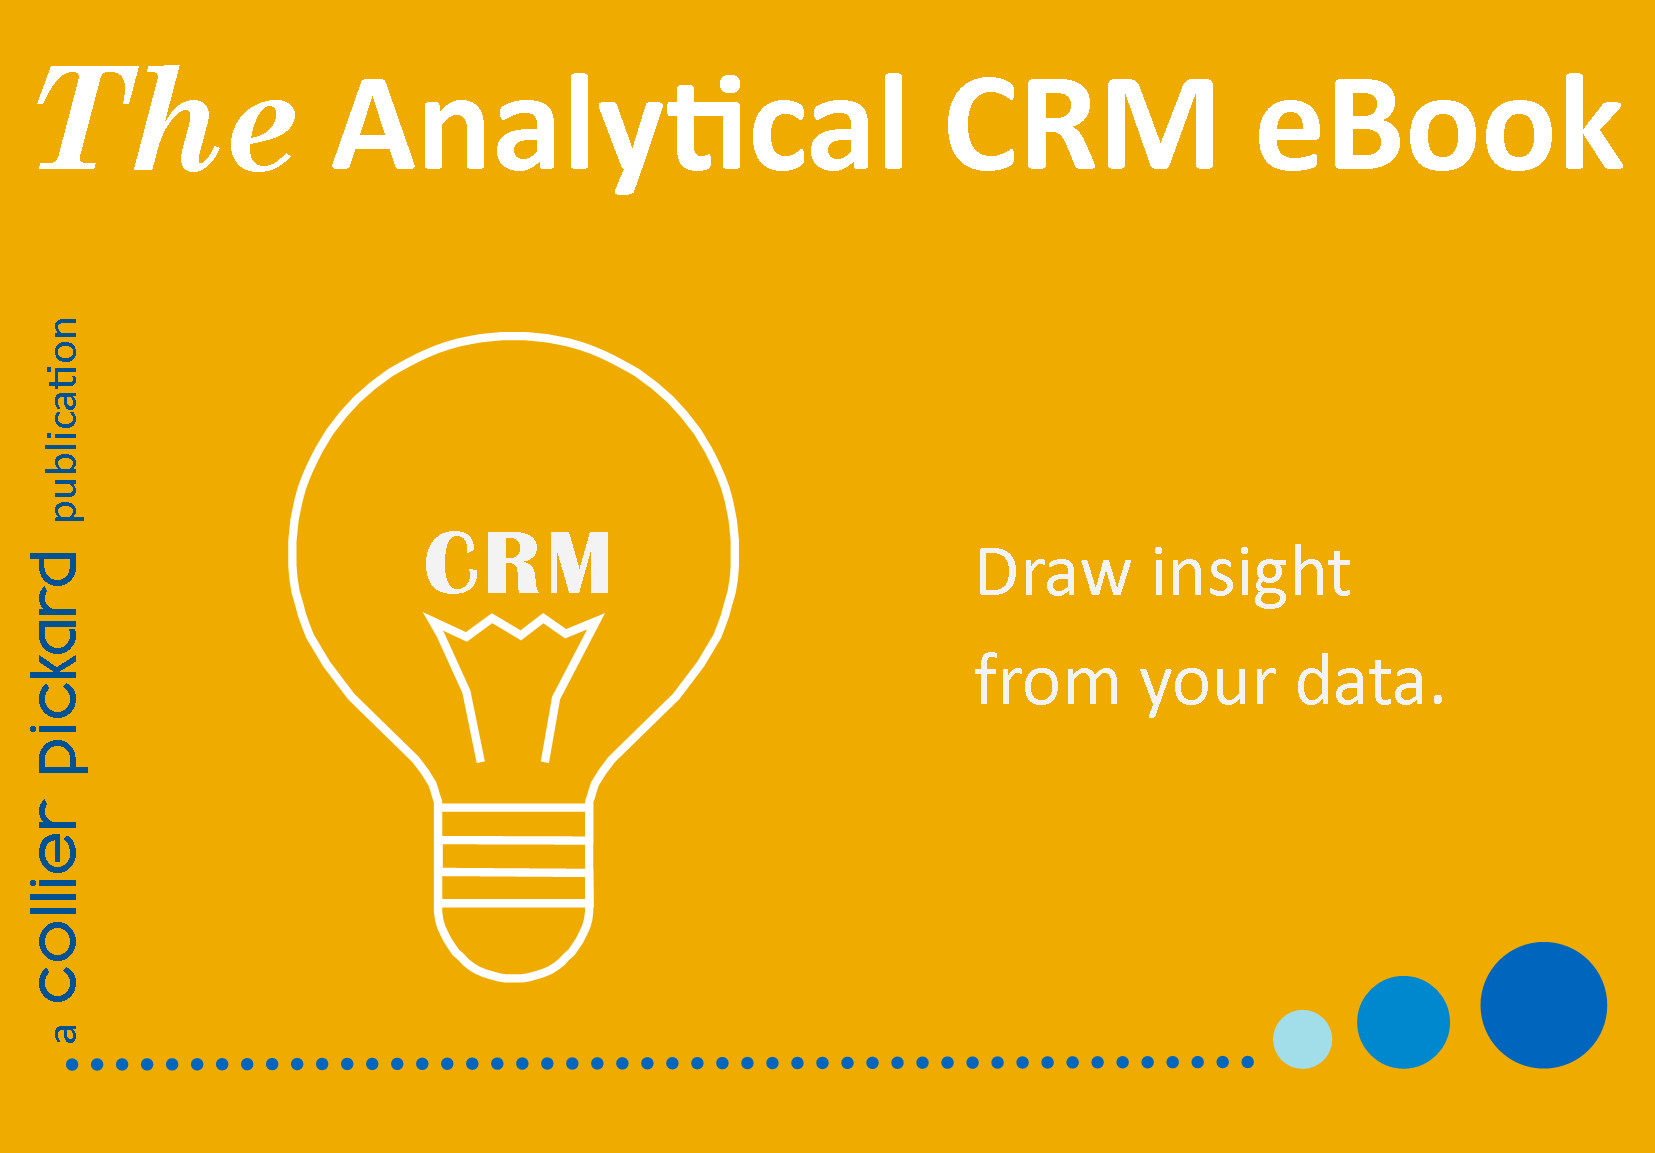 The Analytical CRM eBook